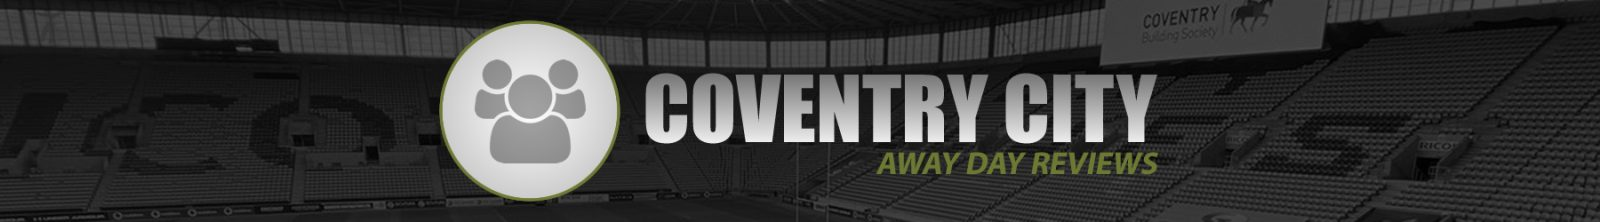 Review Coventry City